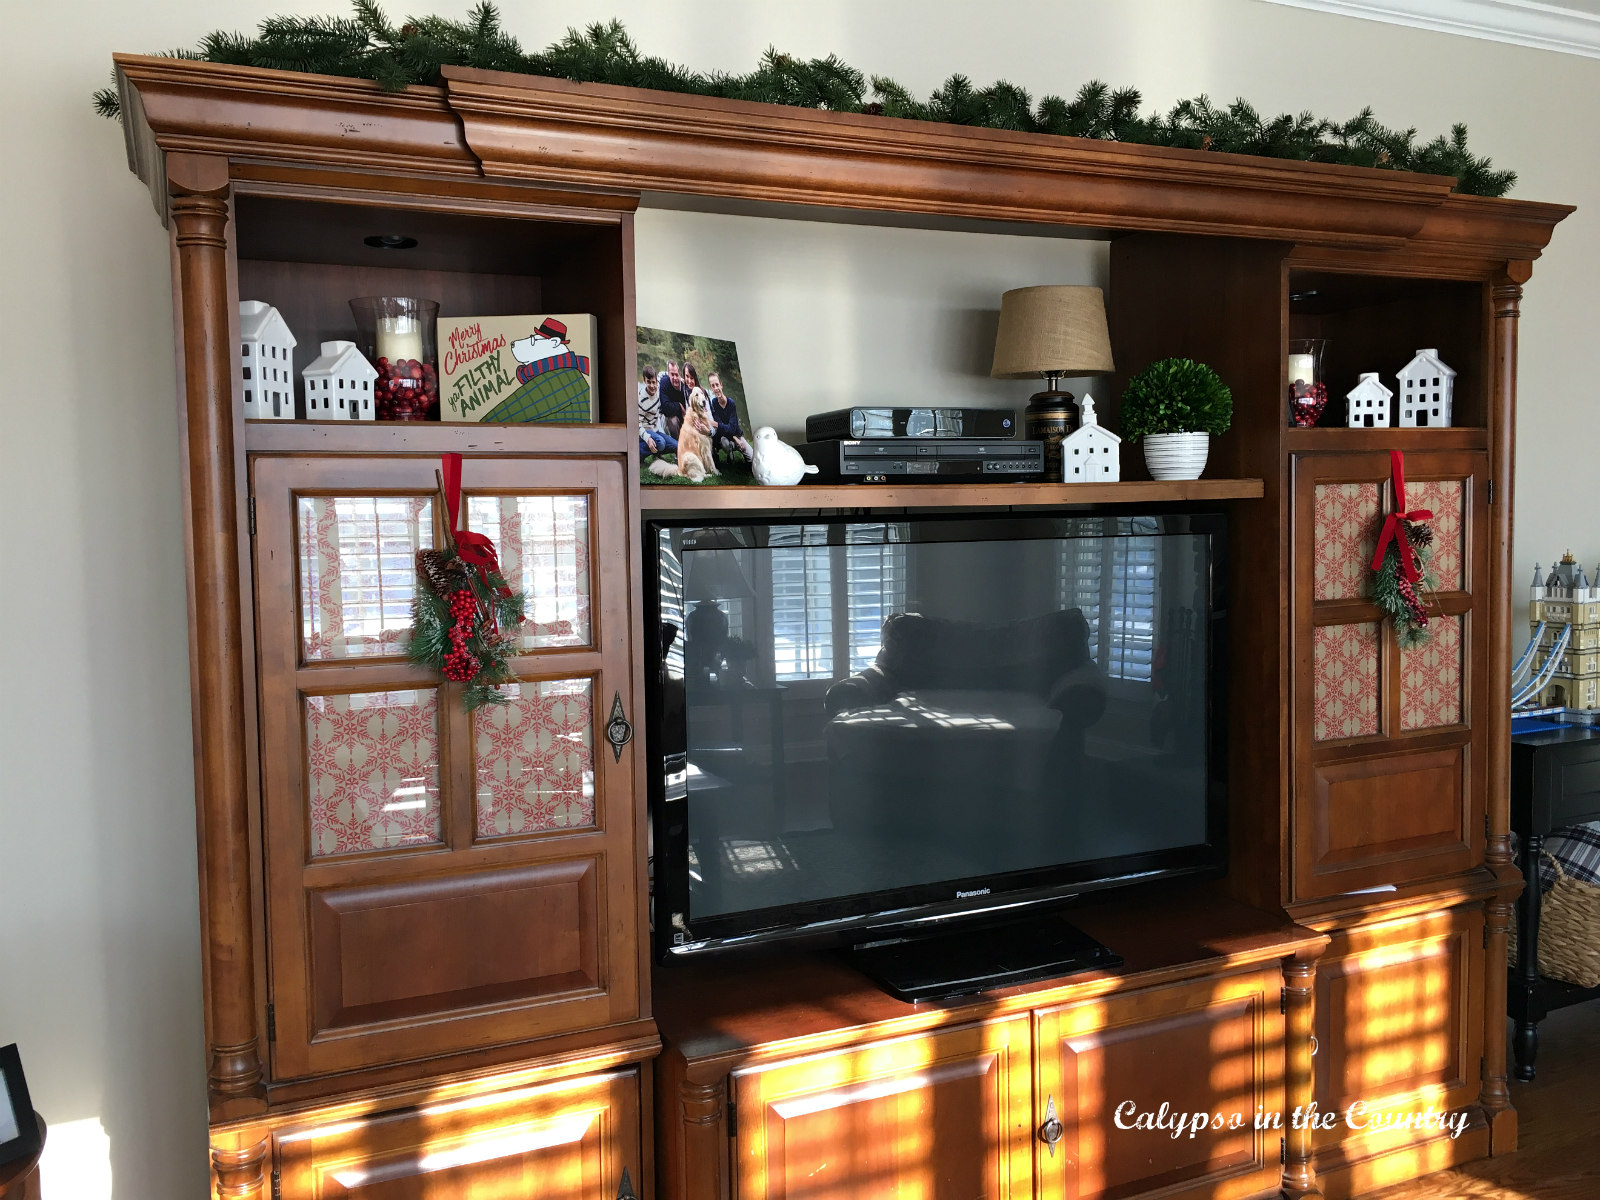 TV Cabinet with Wrapping paper on glass doors